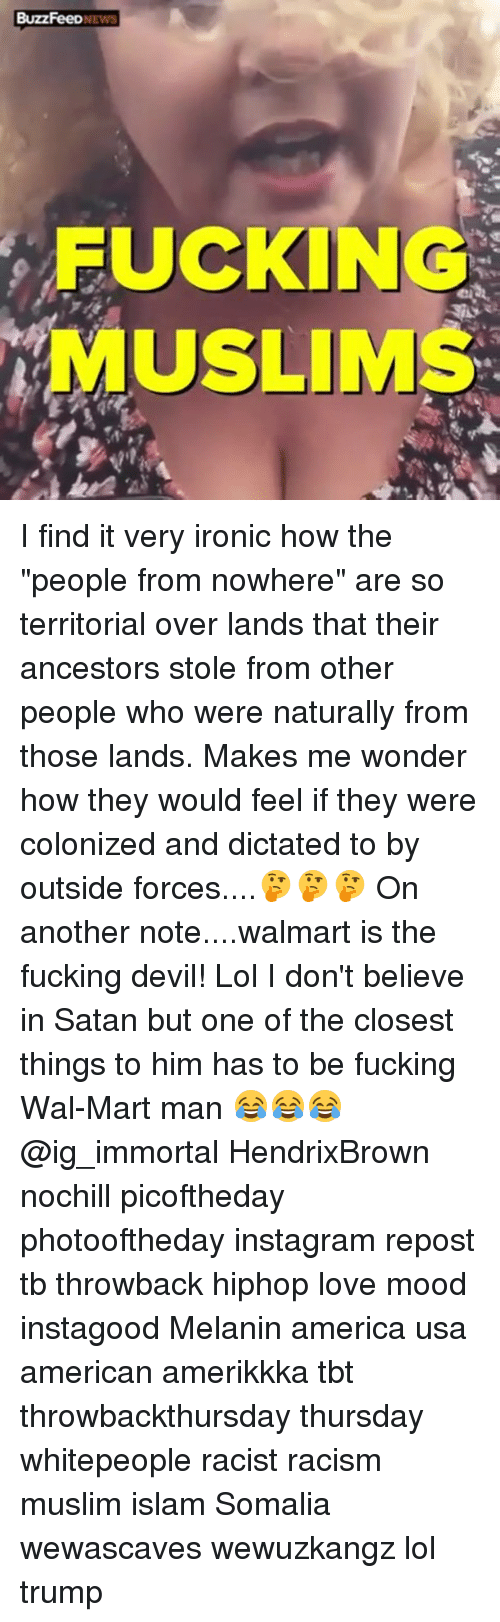 """America, Fucking, and Instagram: BuzzFeeDNEWS  FUCKING  MUSLIMS I find it very ironic how the """"people from nowhere"""" are so territorial over lands that their ancestors stole from other people who were naturally from those lands. Makes me wonder how they would feel if they were colonized and dictated to by outside forces....🤔🤔🤔 On another note....walmart is the fucking devil! Lol I don't believe in Satan but one of the closest things to him has to be fucking Wal-Mart man 😂😂😂 @ig_immortal HendrixBrown nochill picoftheday photooftheday instagram repost tb throwback hiphop love mood instagood Melanin america usa american amerikkka tbt throwbackthursday thursday whitepeople racist racism muslim islam Somalia wewascaves wewuzkangz lol trump"""